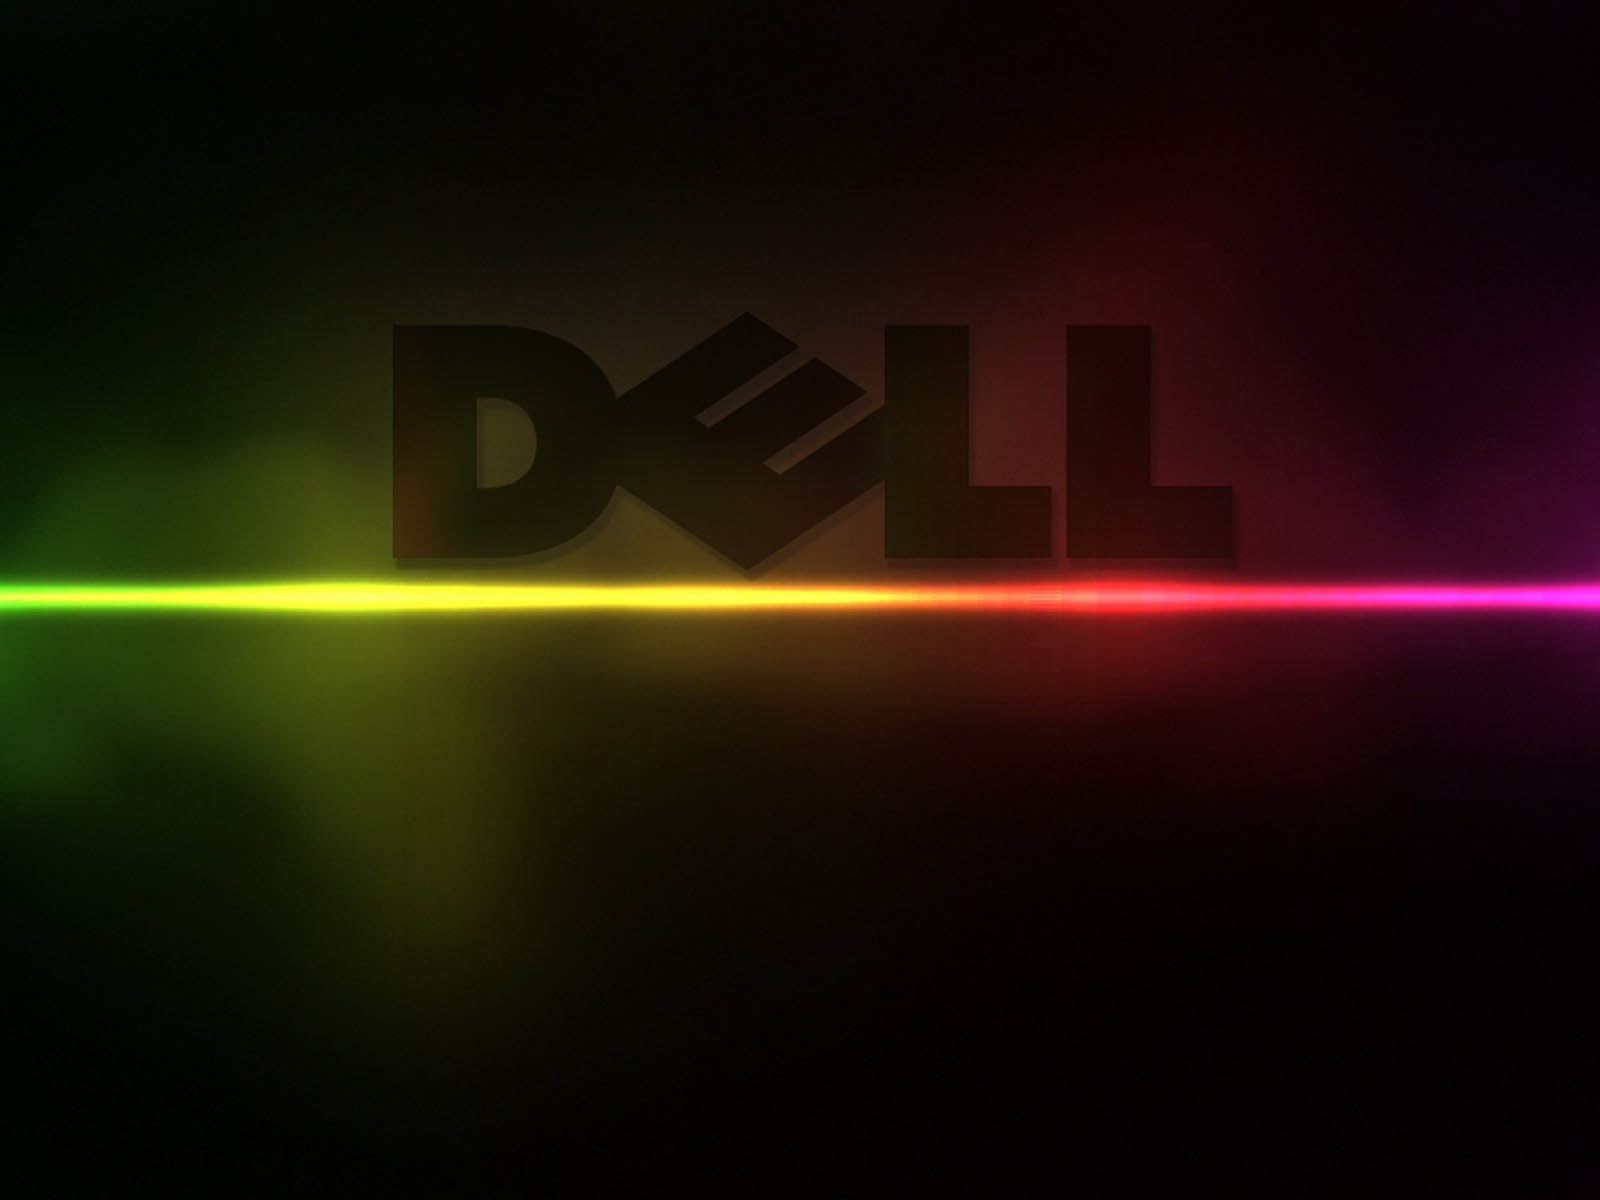 dell computers wallpaper logo - photo #7